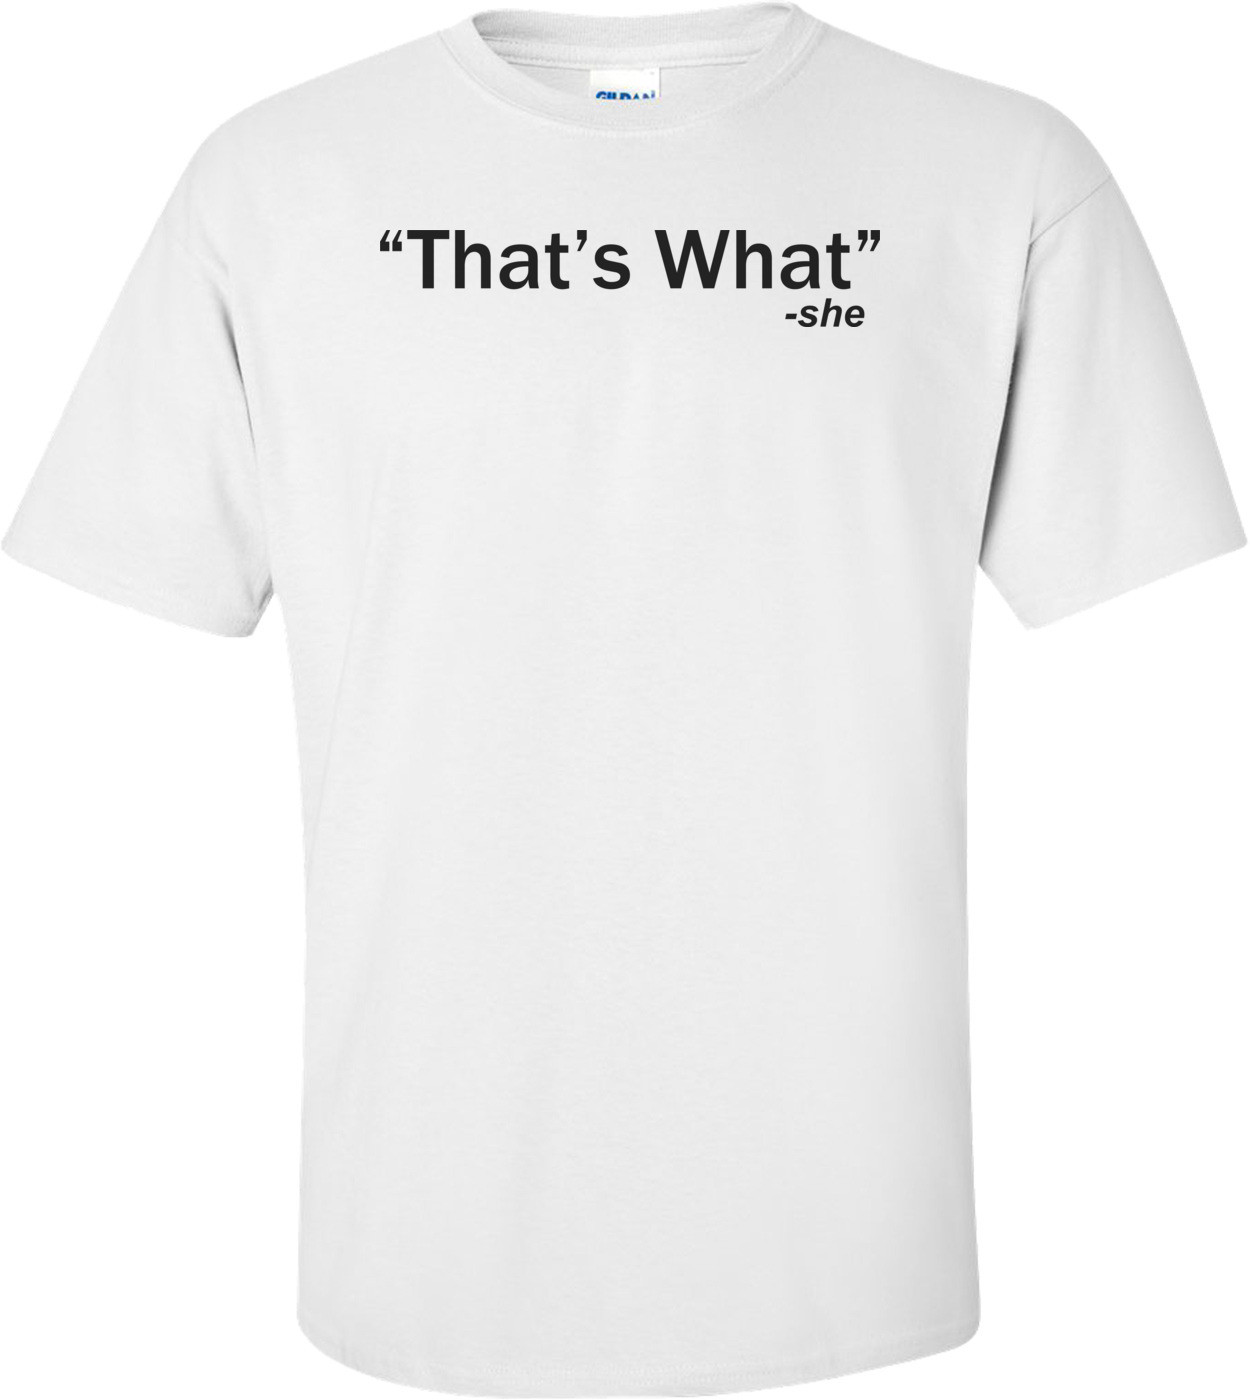 That's What - She Said Quote Funny Shirt